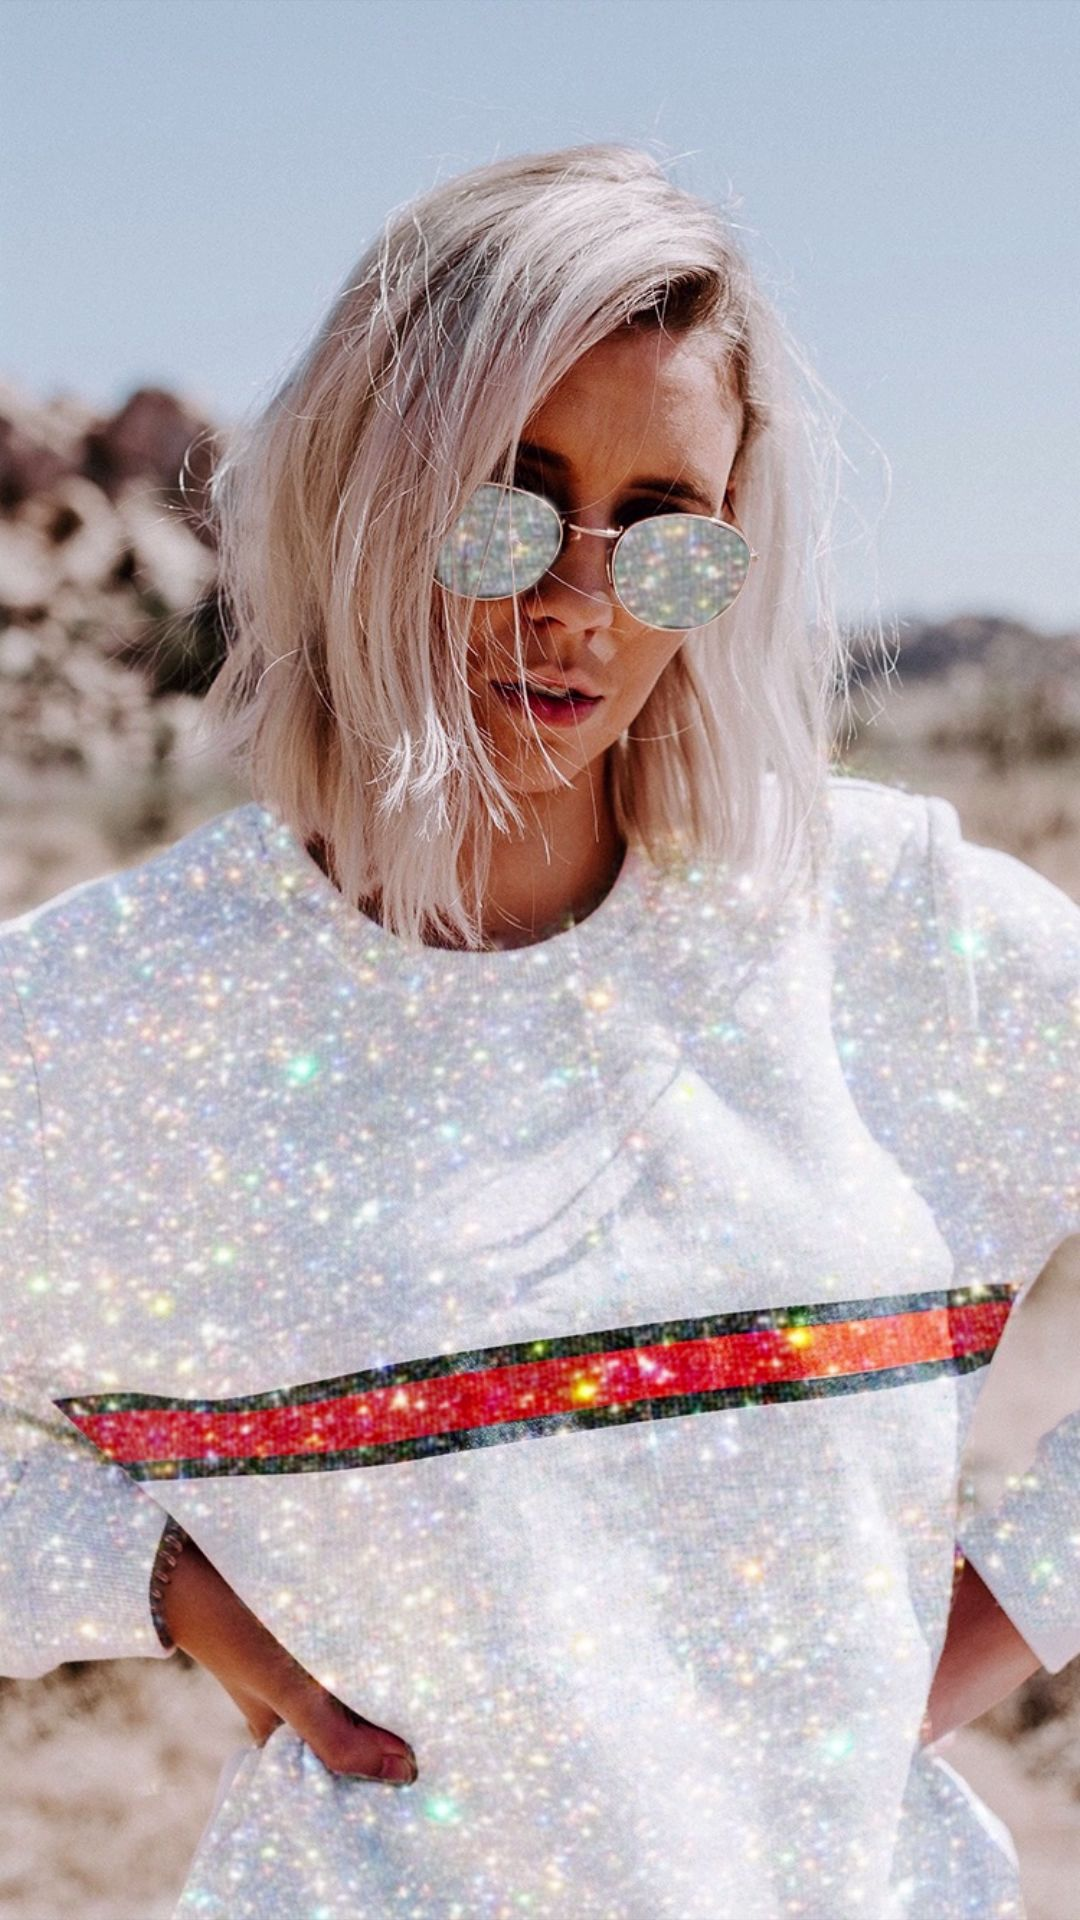 How To Add A Glitter Effect To Your Photos With PicsArt ✨